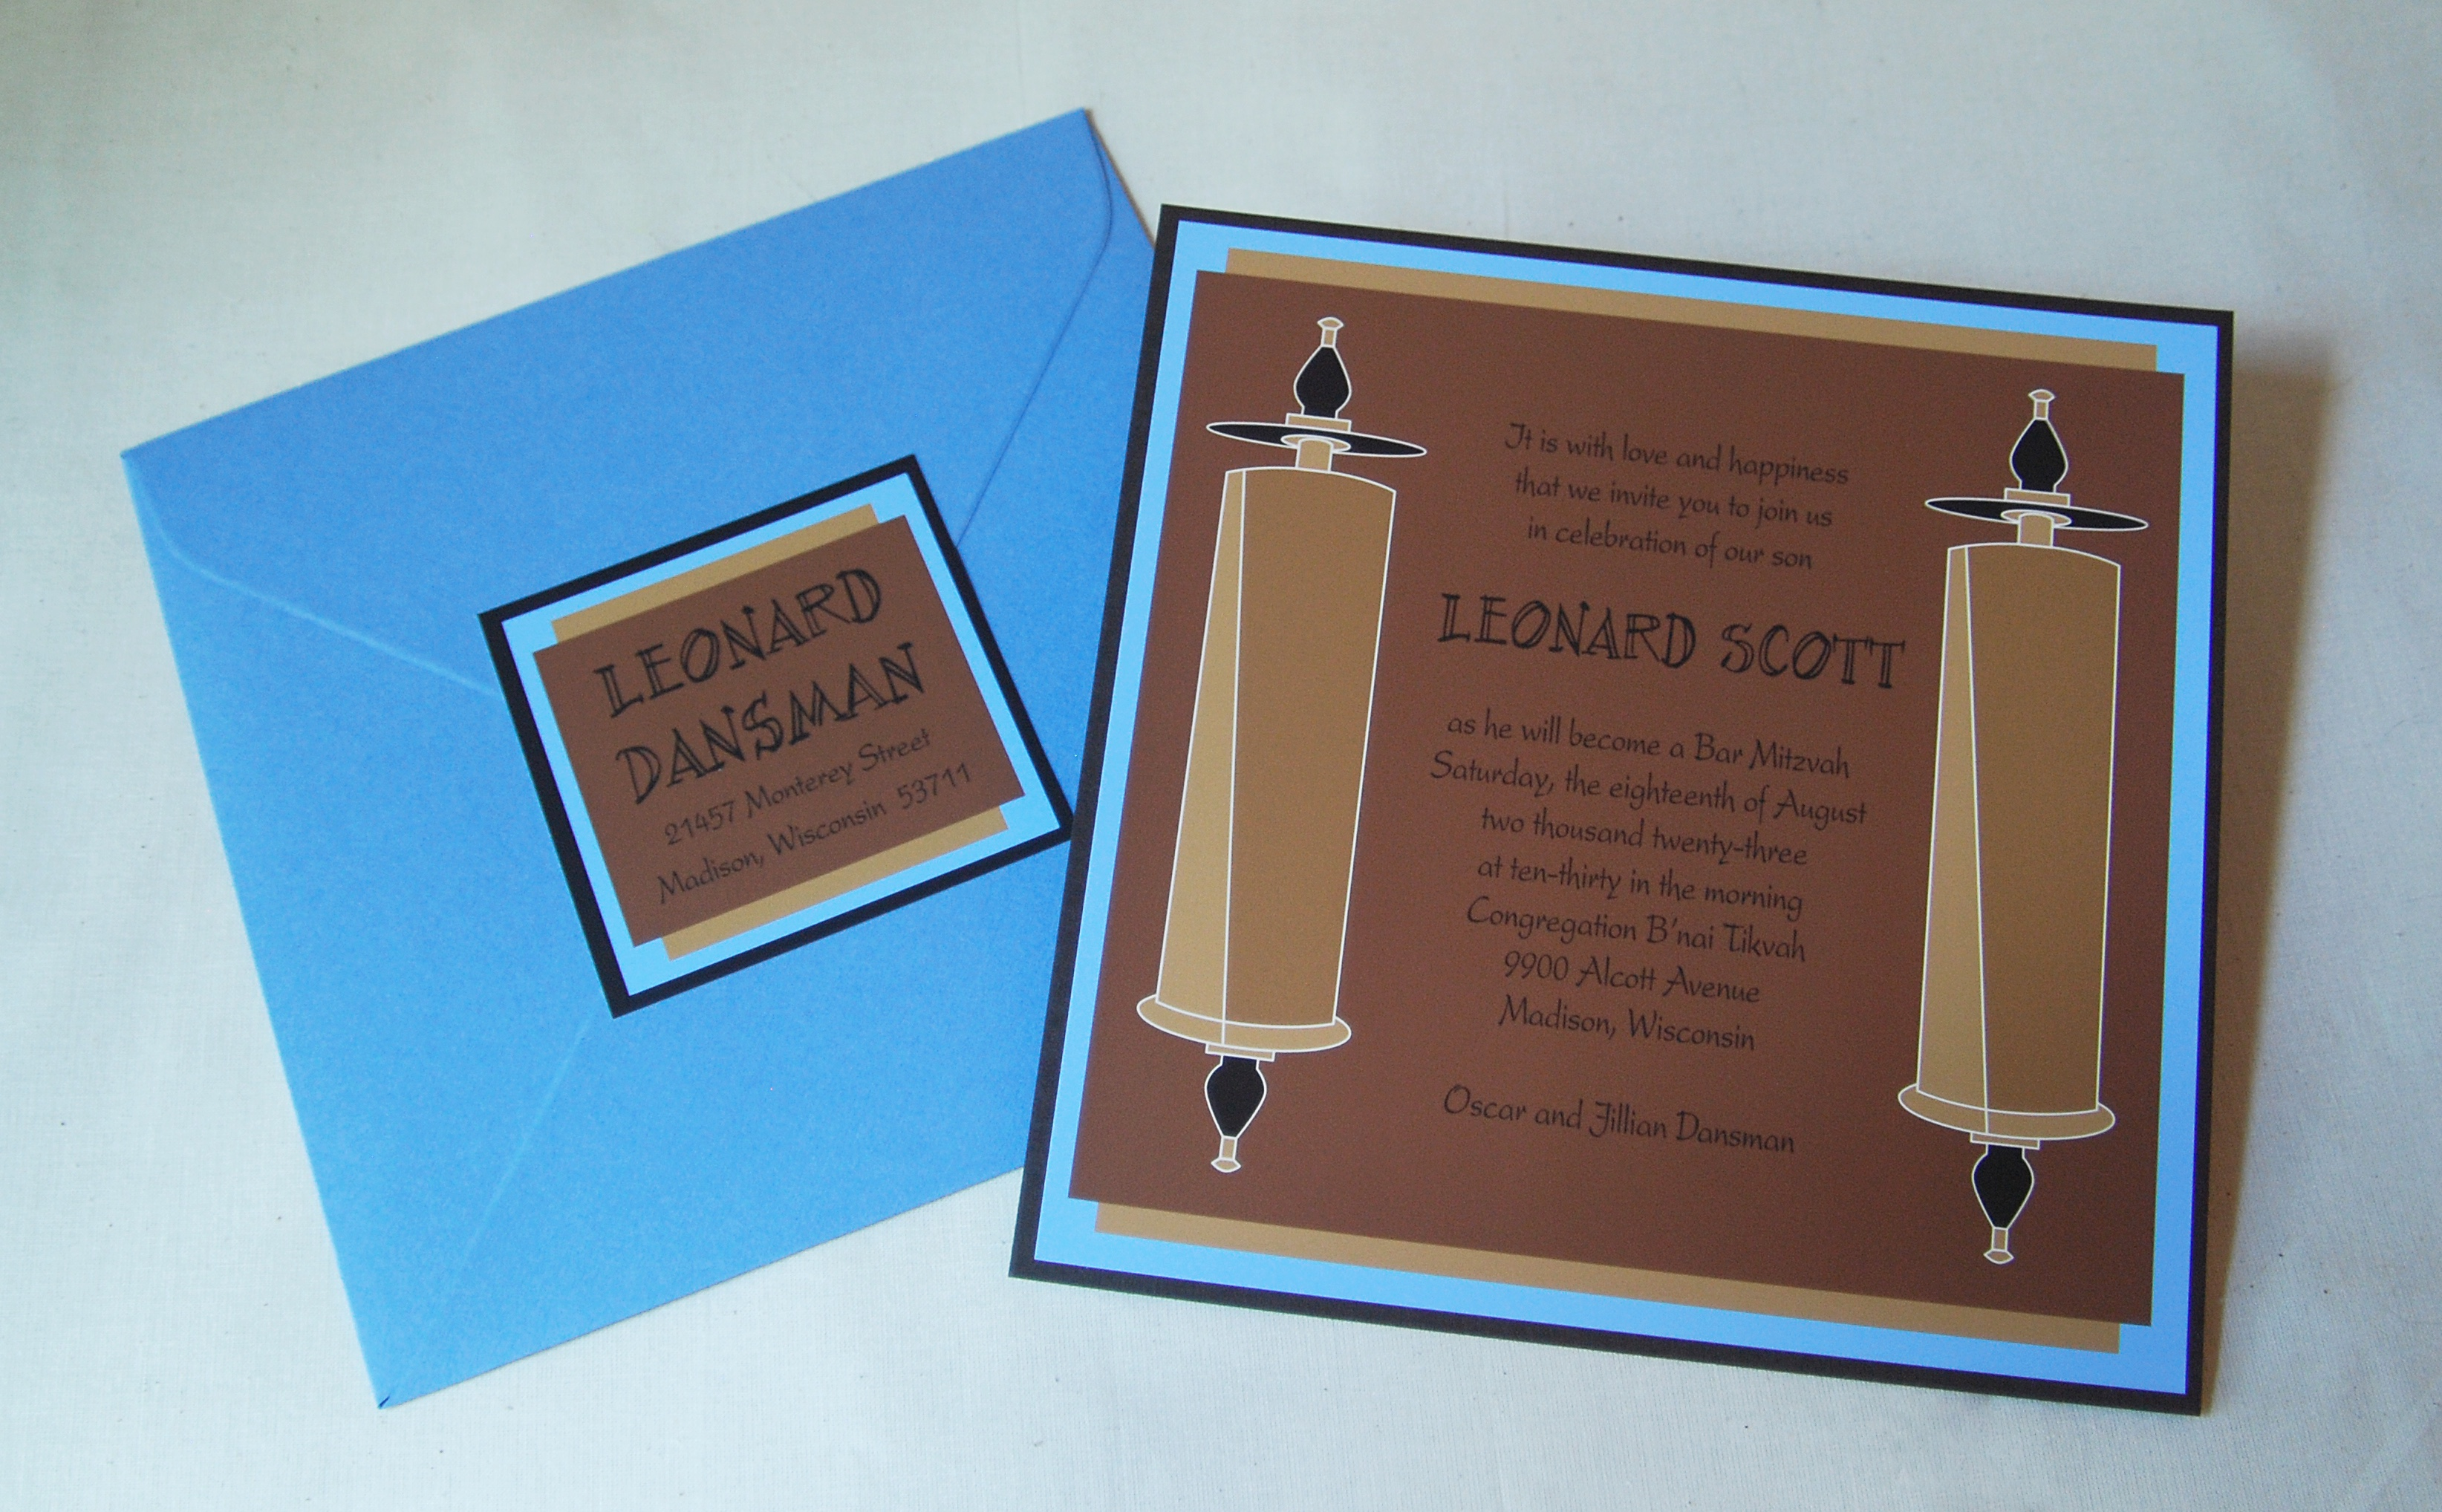 Leonard Scott bar mitzvah invitation